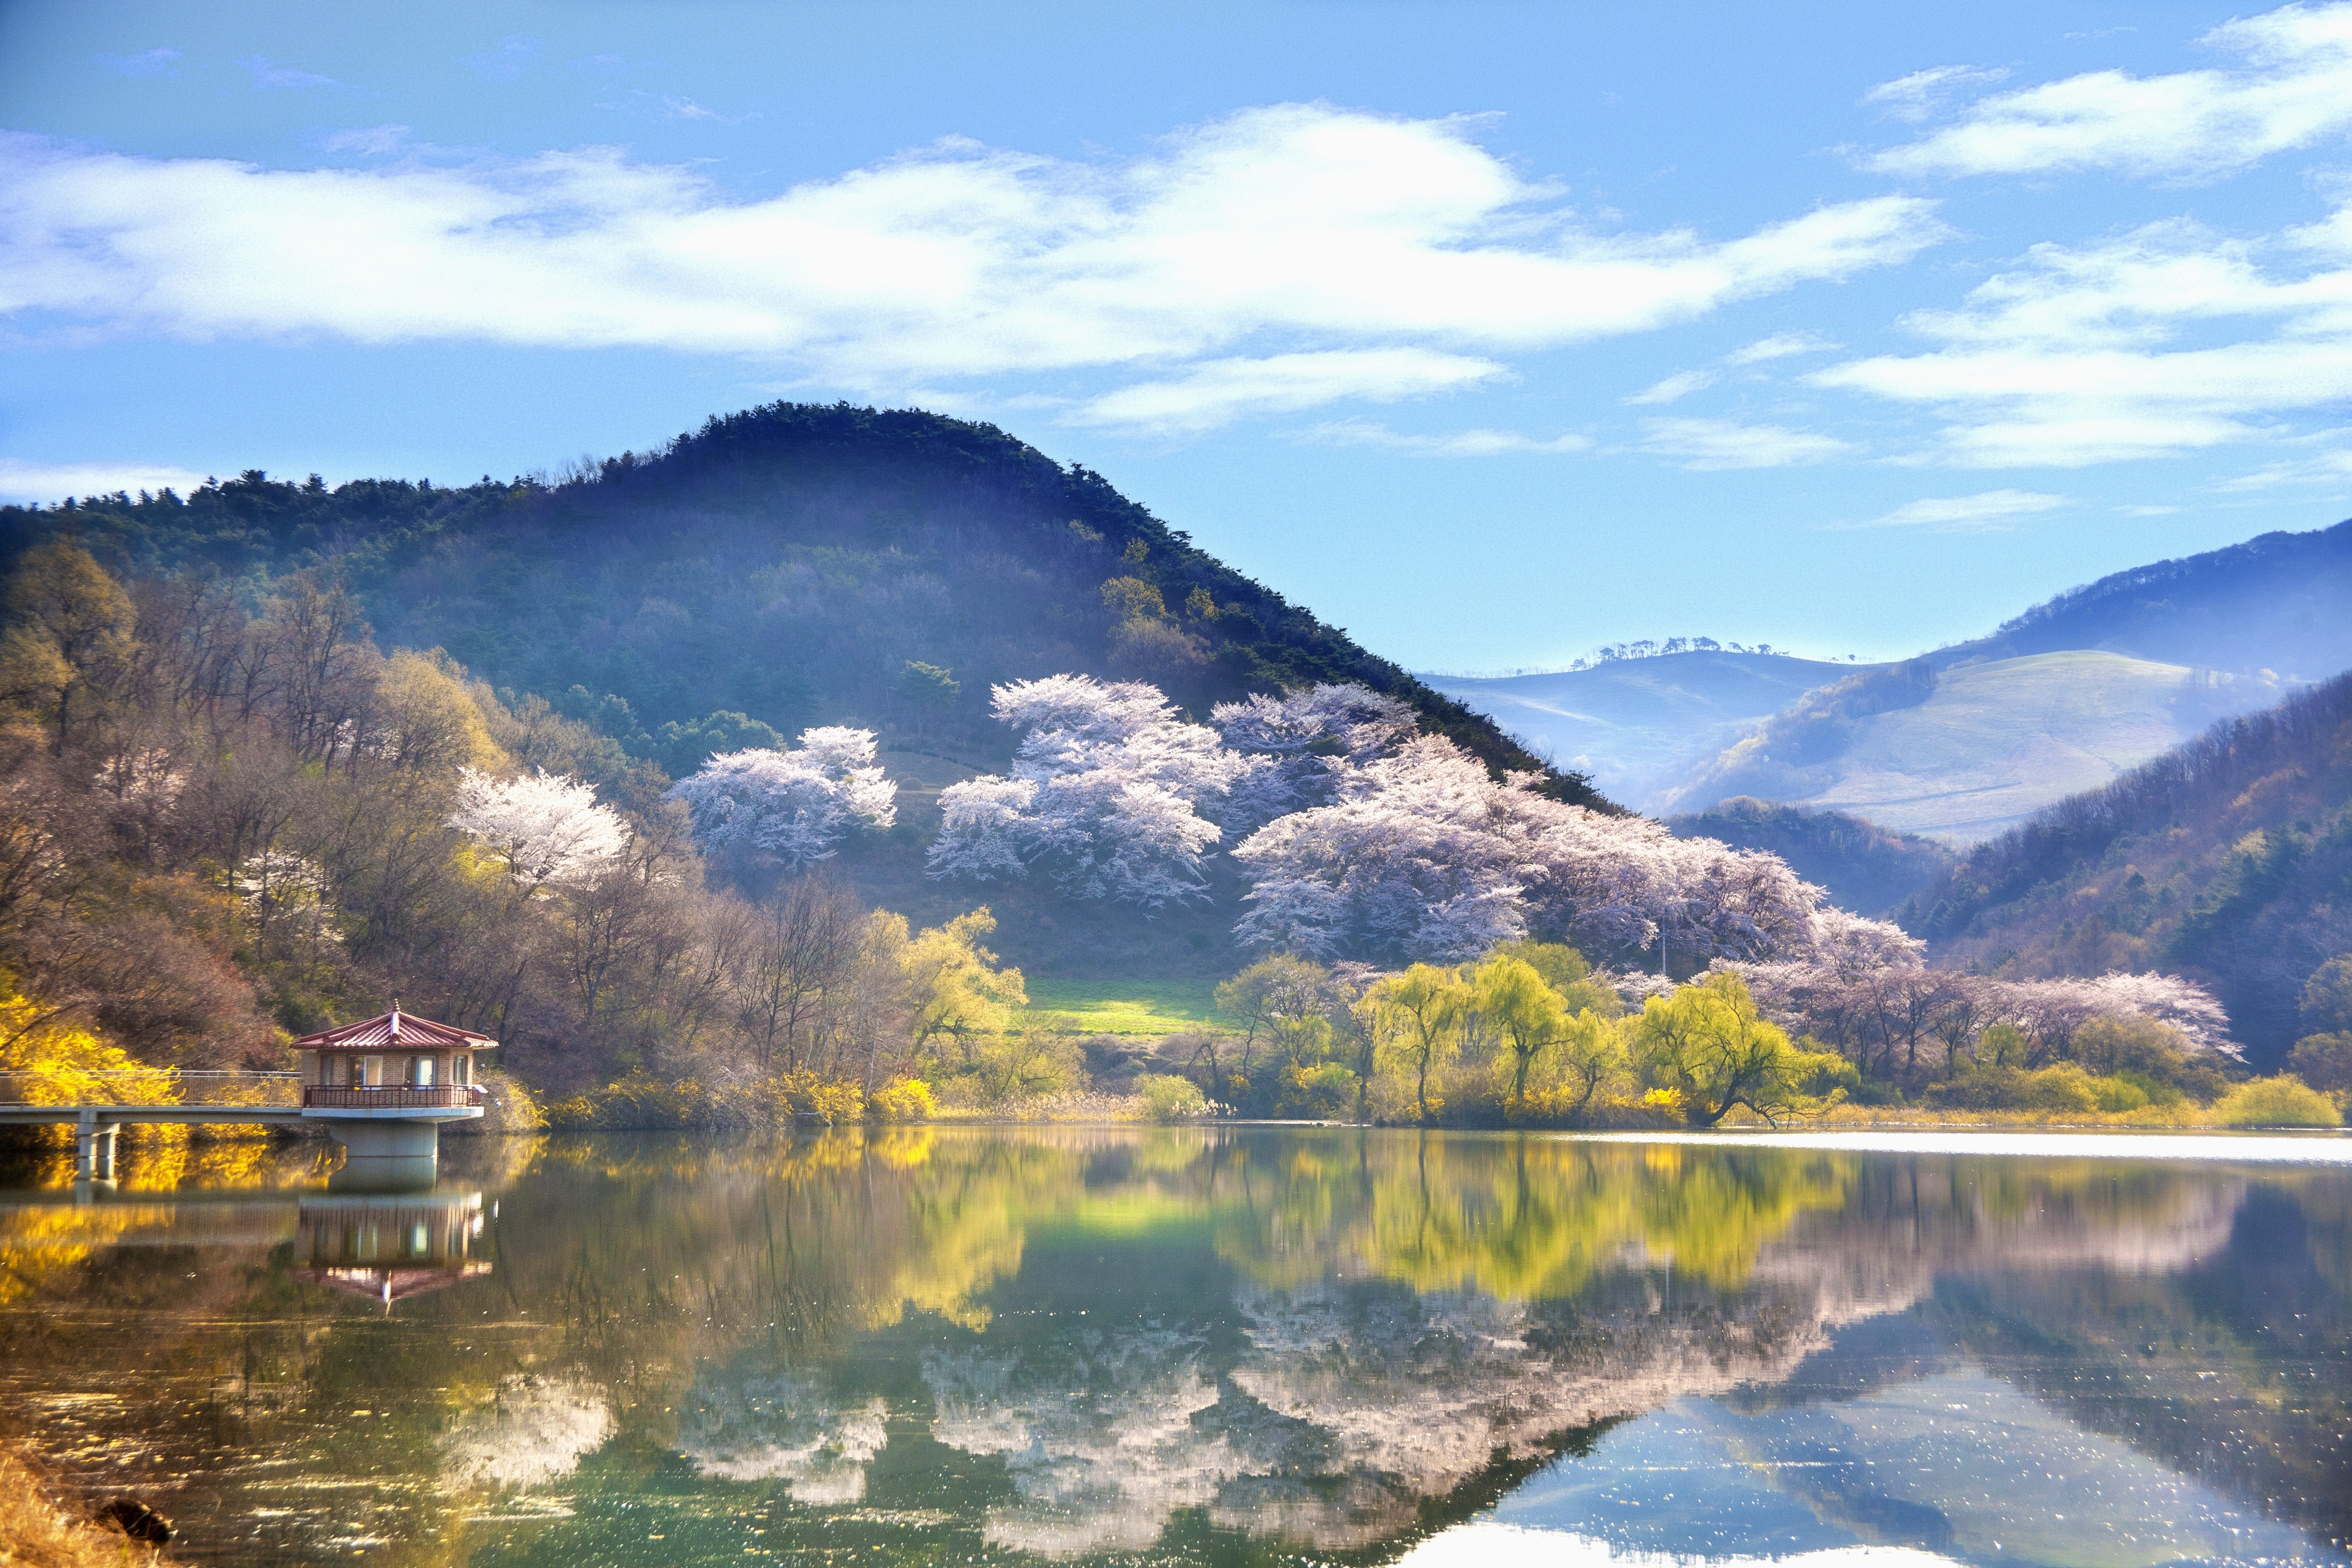 Photograph if a lake in Korea, with a mountainous background and beautiful blossoming trees